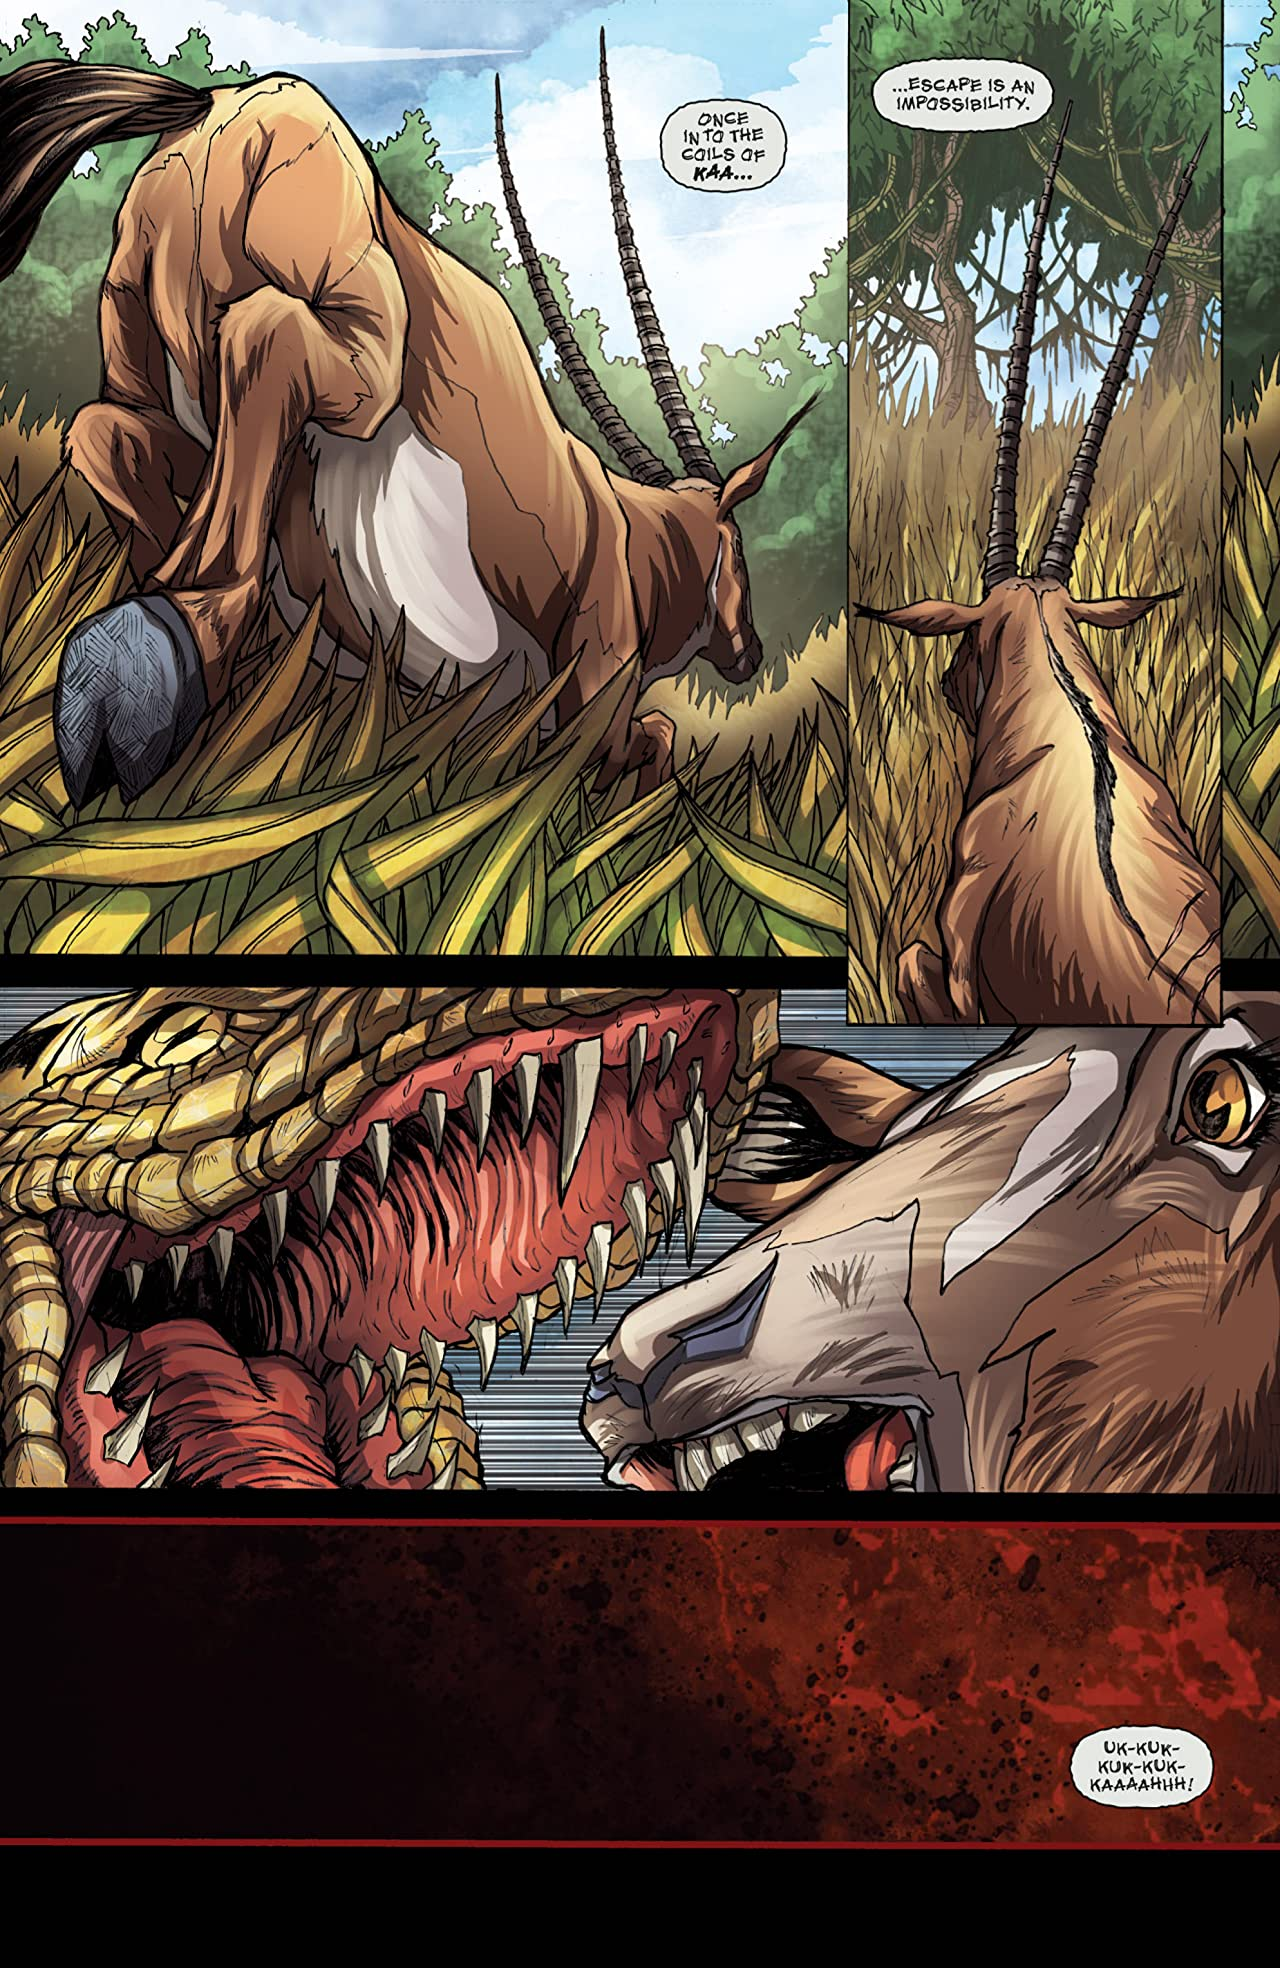 The Jungle Book #4